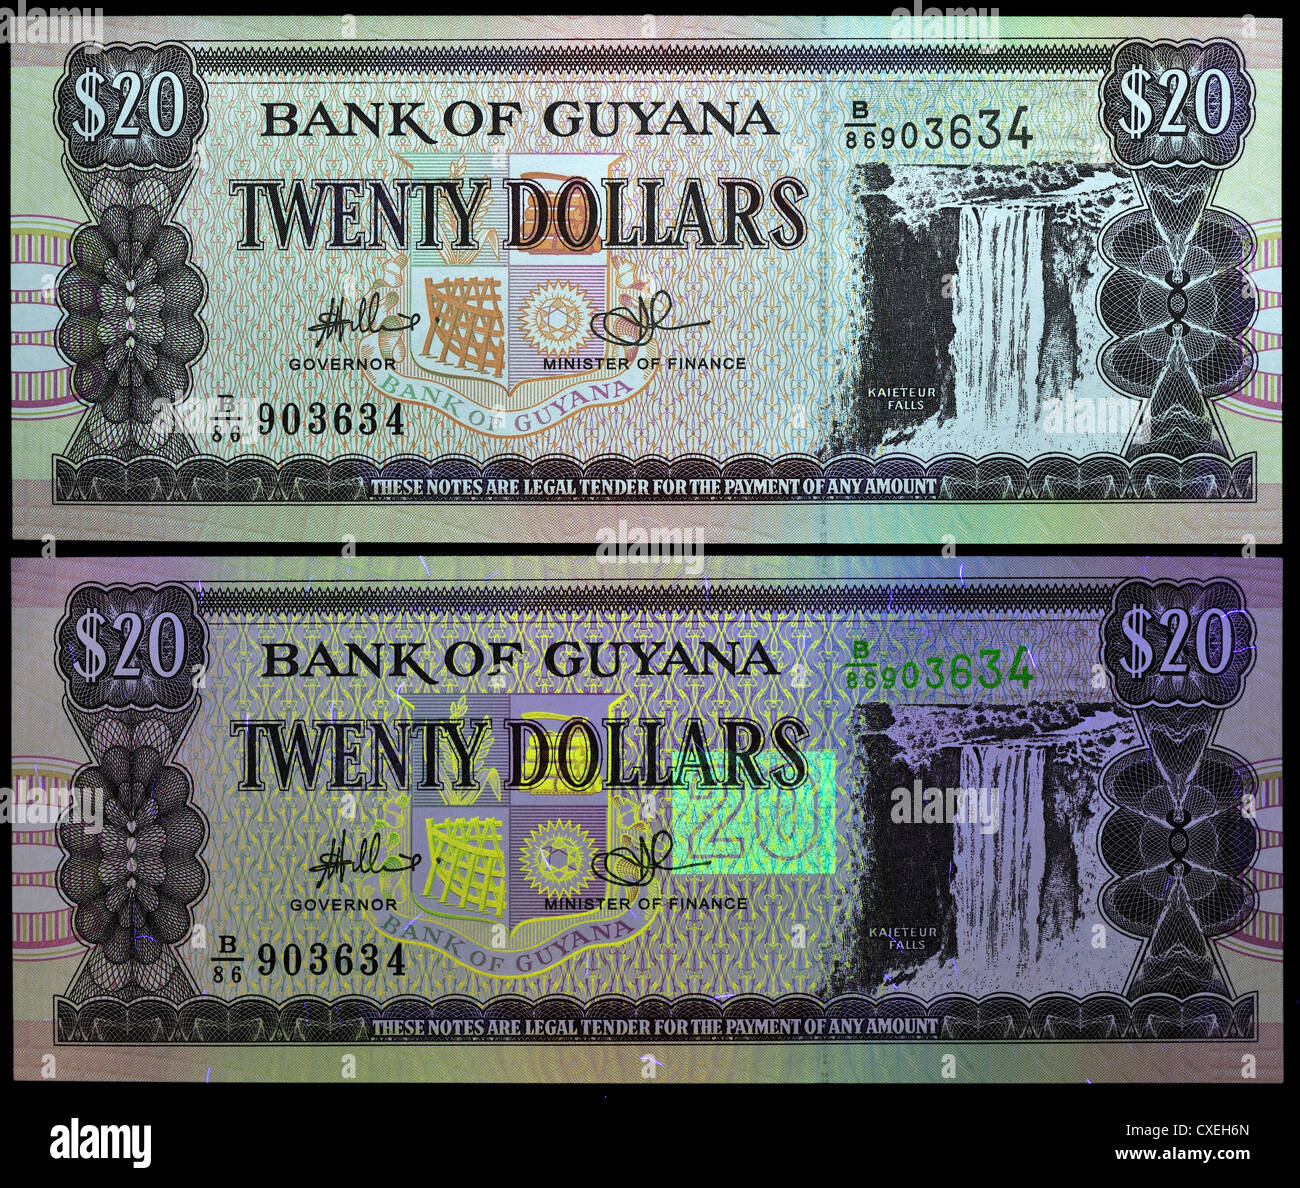 Banknote seen under natural light and UV light, showing security features. 20 Dollar note, Guyana, - Stock Image